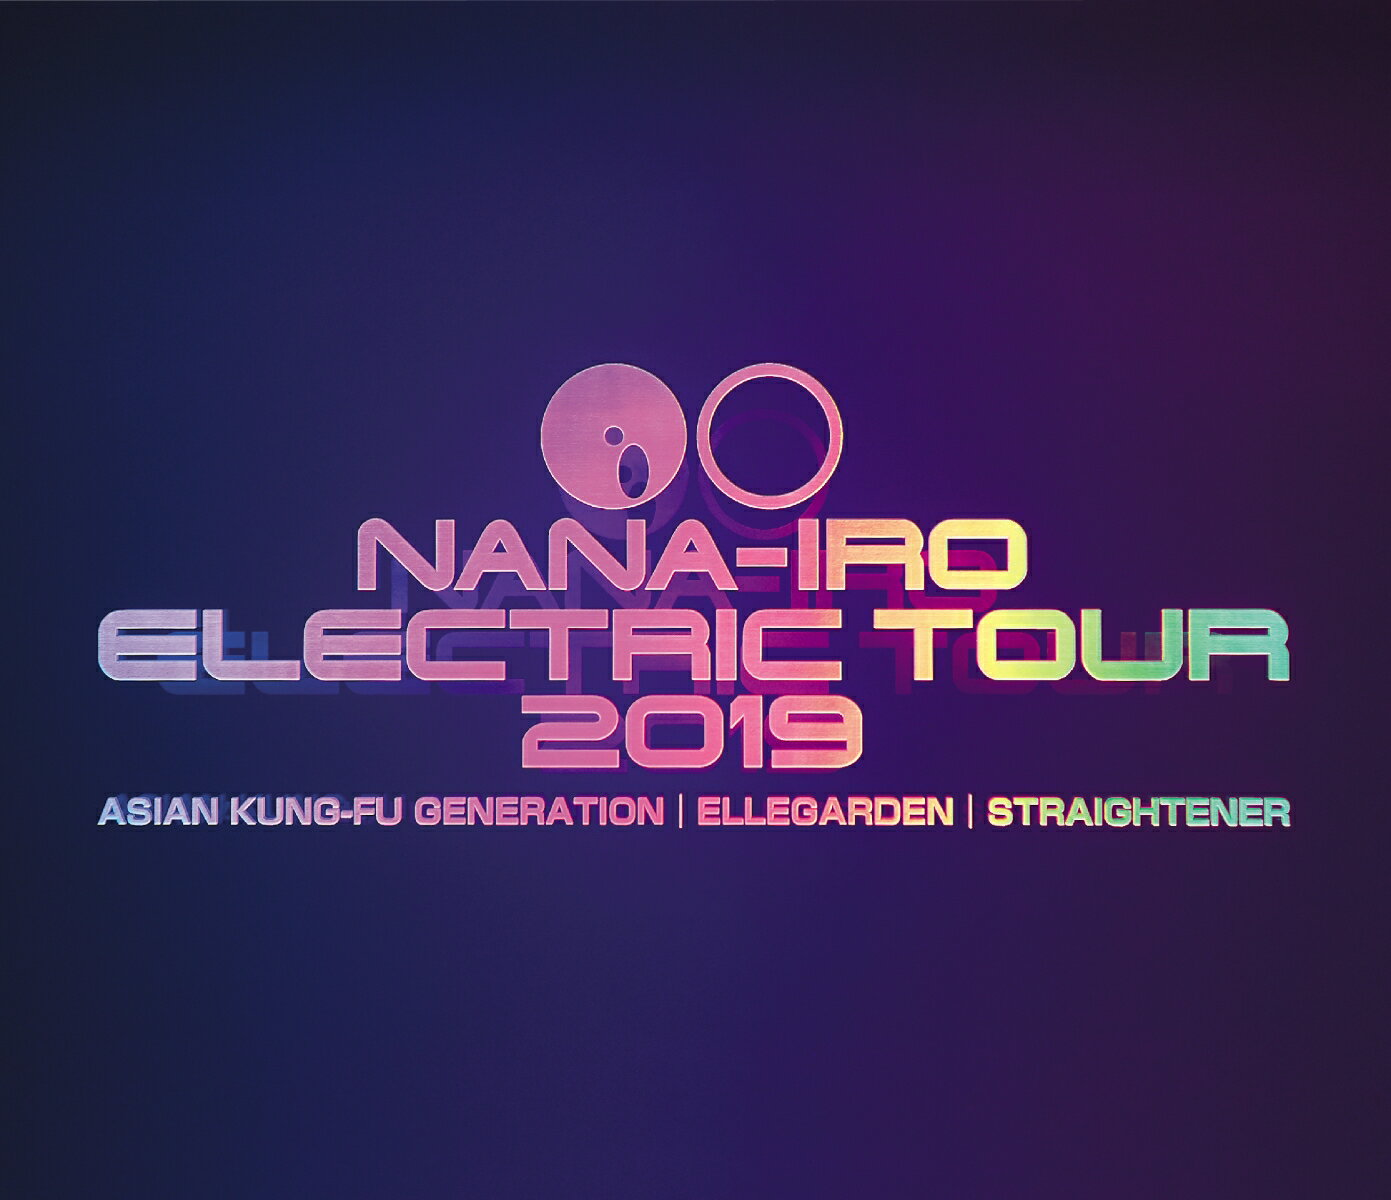 NANA-IRO ELECTRIC TOUR 2019【Blu-ray】画像